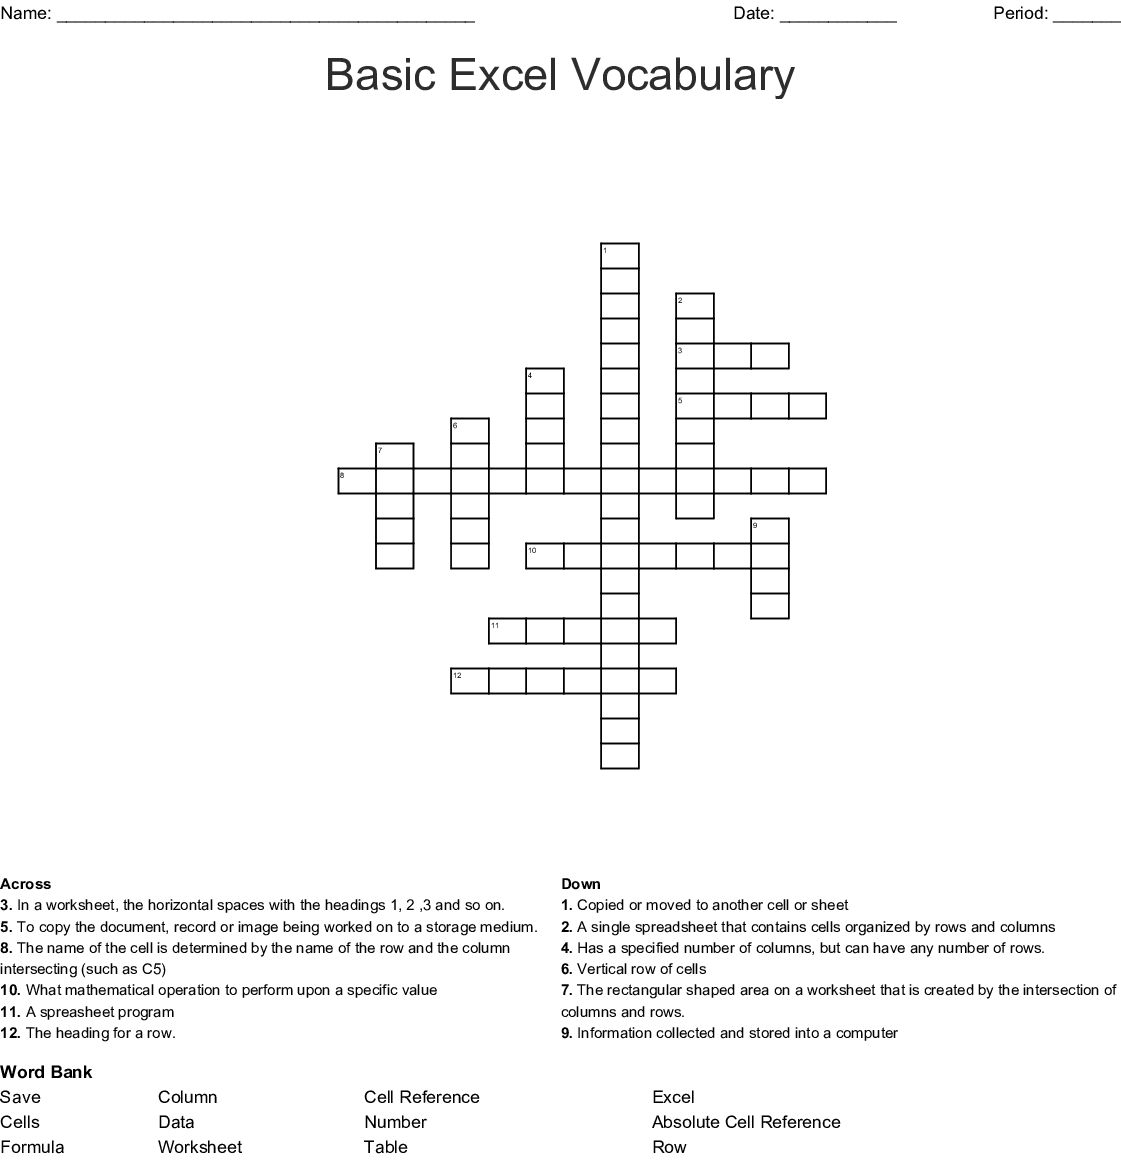 Basic Excel Vocabulary Crossword